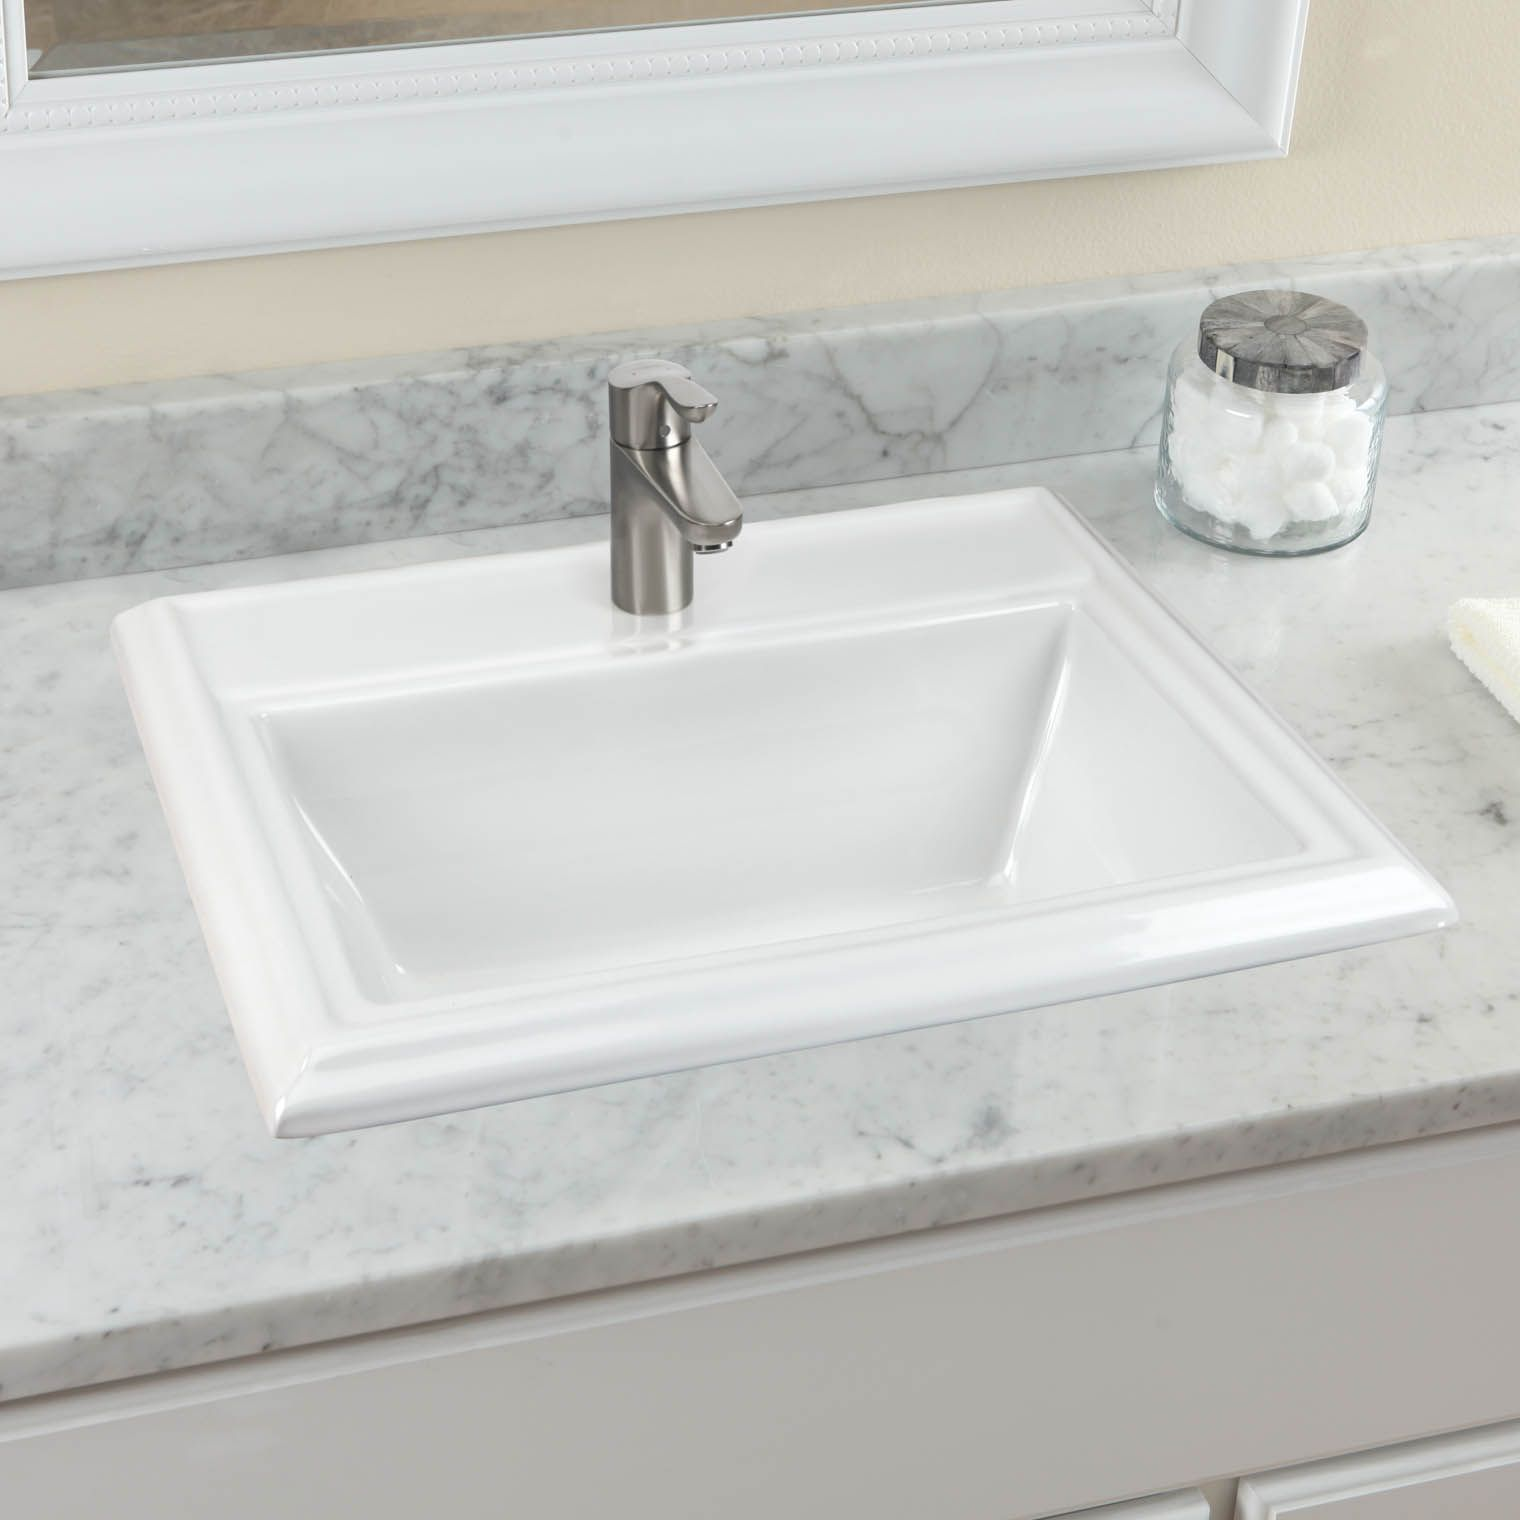 Town Square 23 1 8″ Drop In Bathroom Sink for Single Hole Faucet